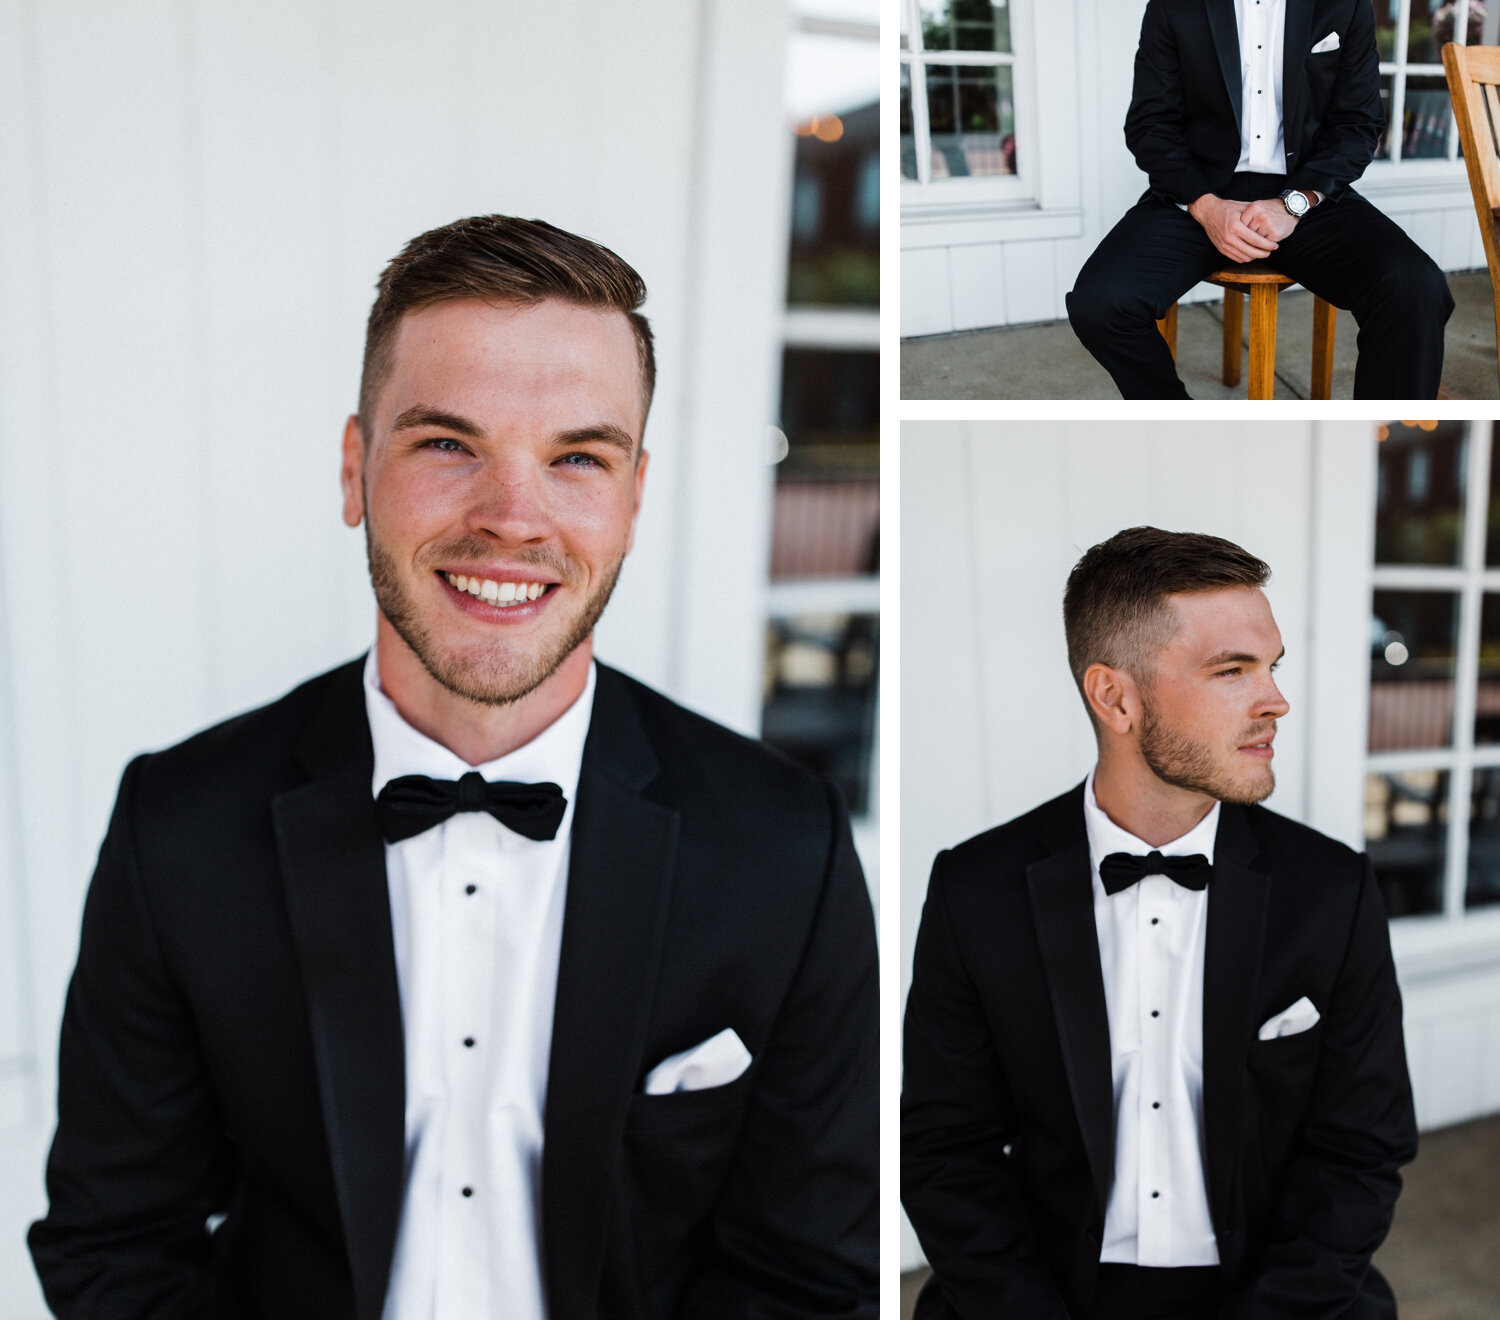 groom portraits at nationwide hotel and conference center in columbus, ohio